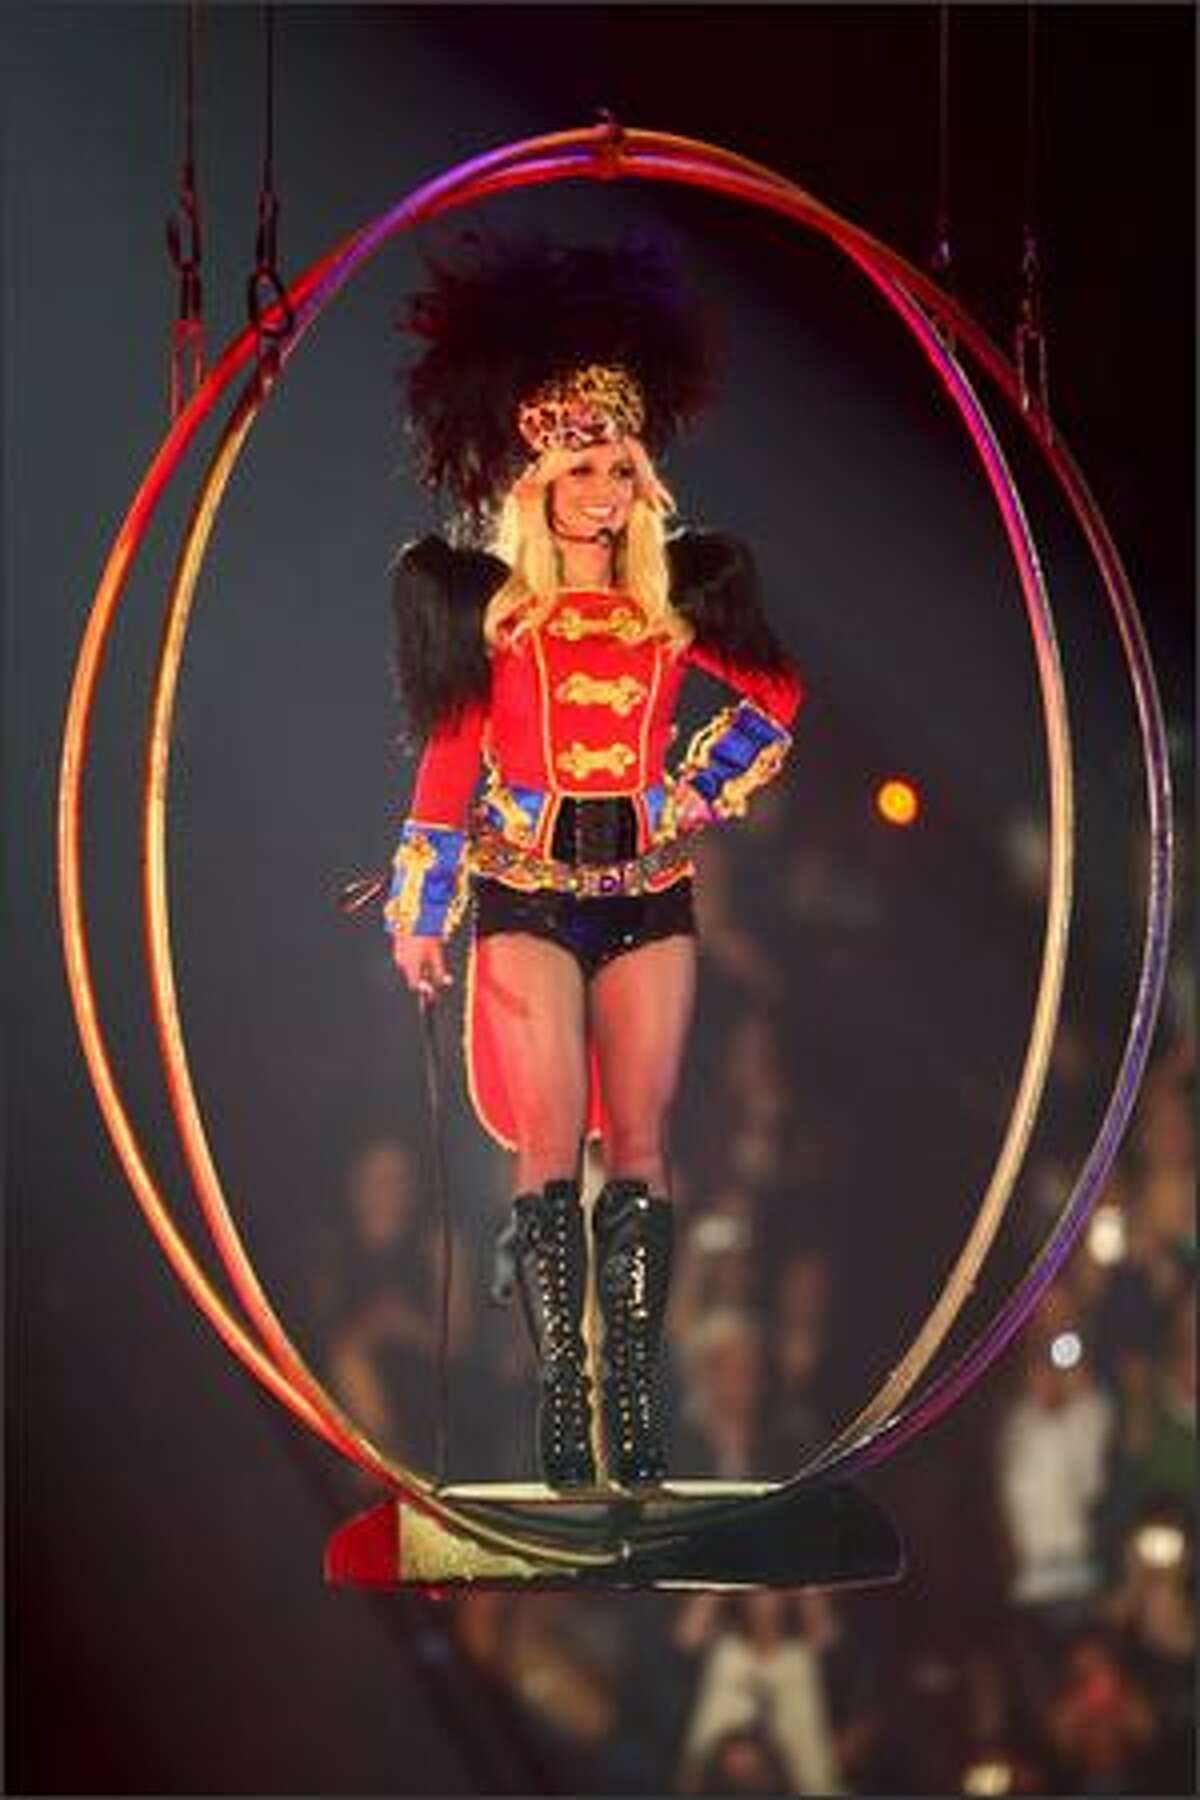 """Britney Spears descends from the rafters to begin her performance during her """"Circus"""" tour stop at the Tacoma Dome on Thursday night."""